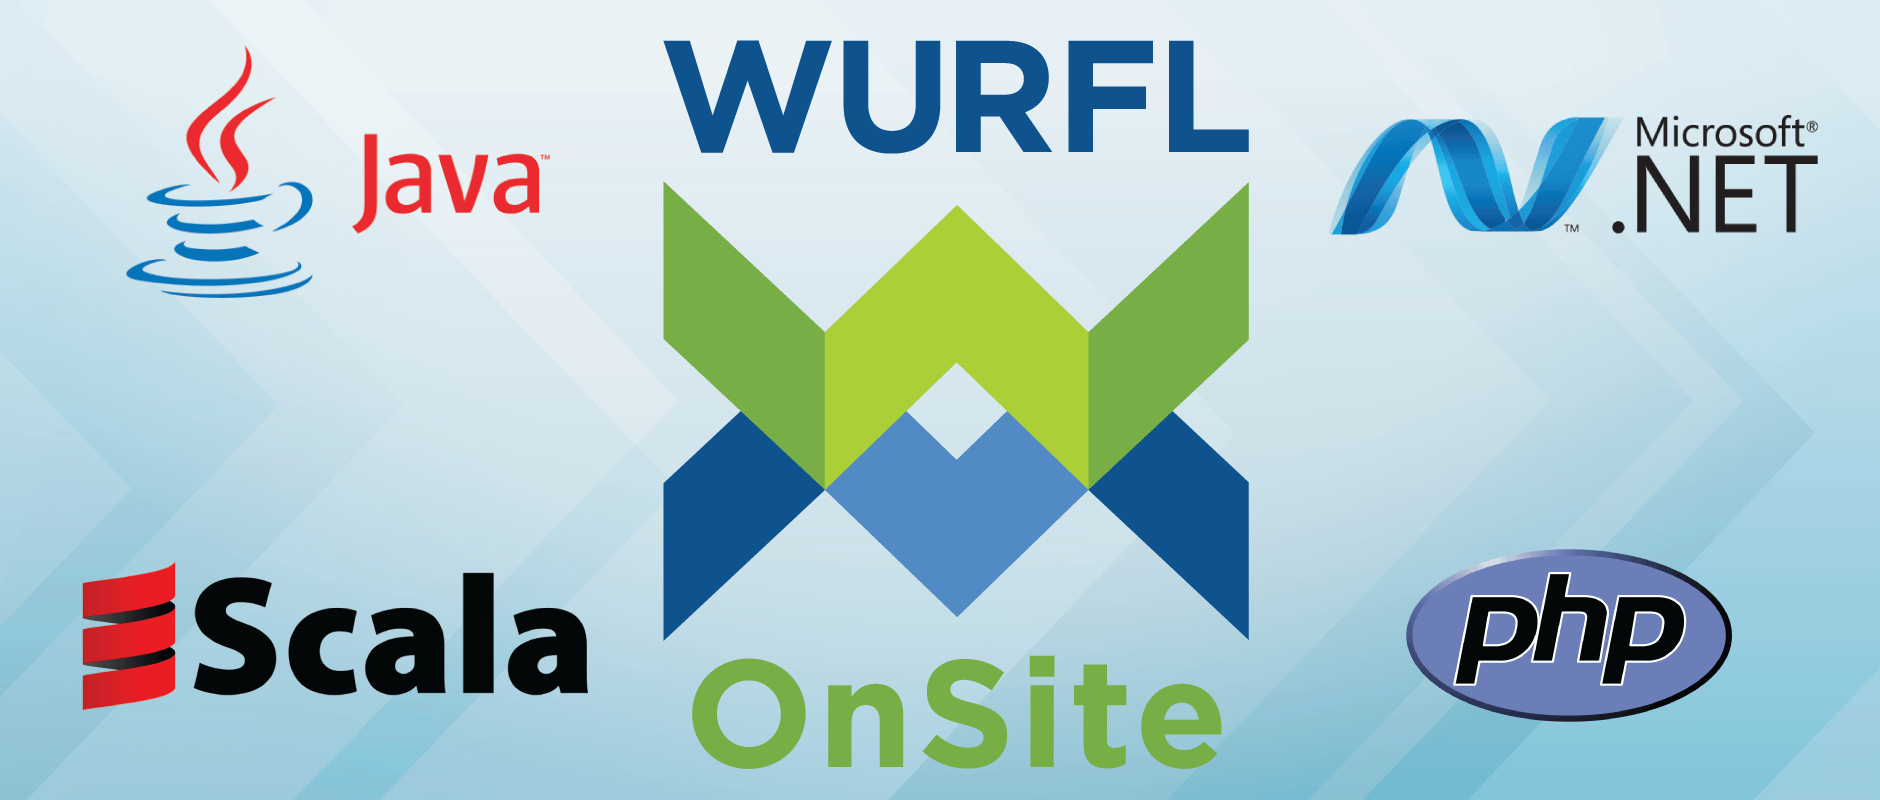 WURFL OnSite Device Detection Java Scala DotNet PHP